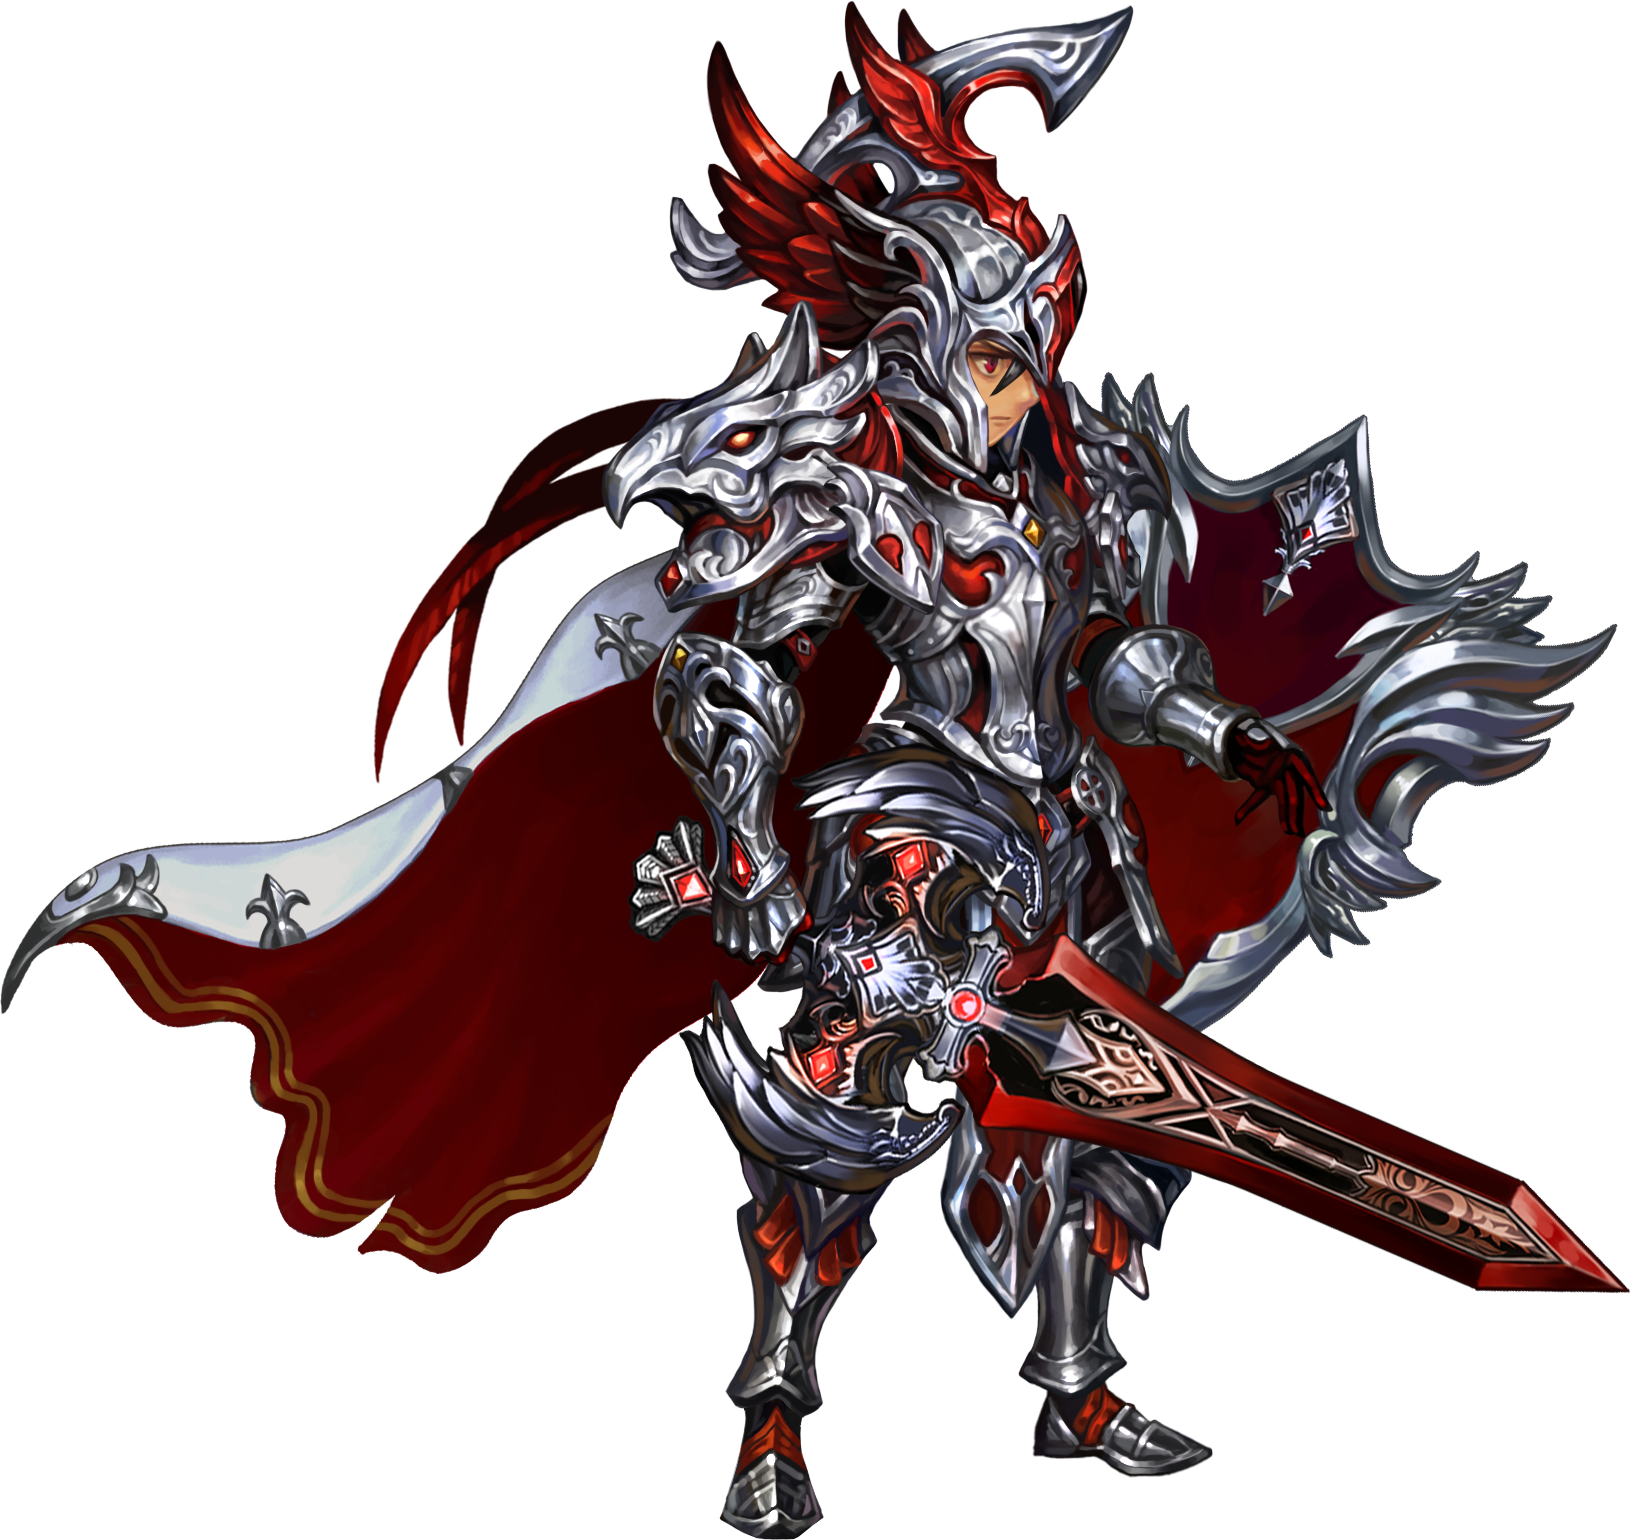 image awakened guild battle warrior dragon blaze wikia fandom powered by wikia. Black Bedroom Furniture Sets. Home Design Ideas